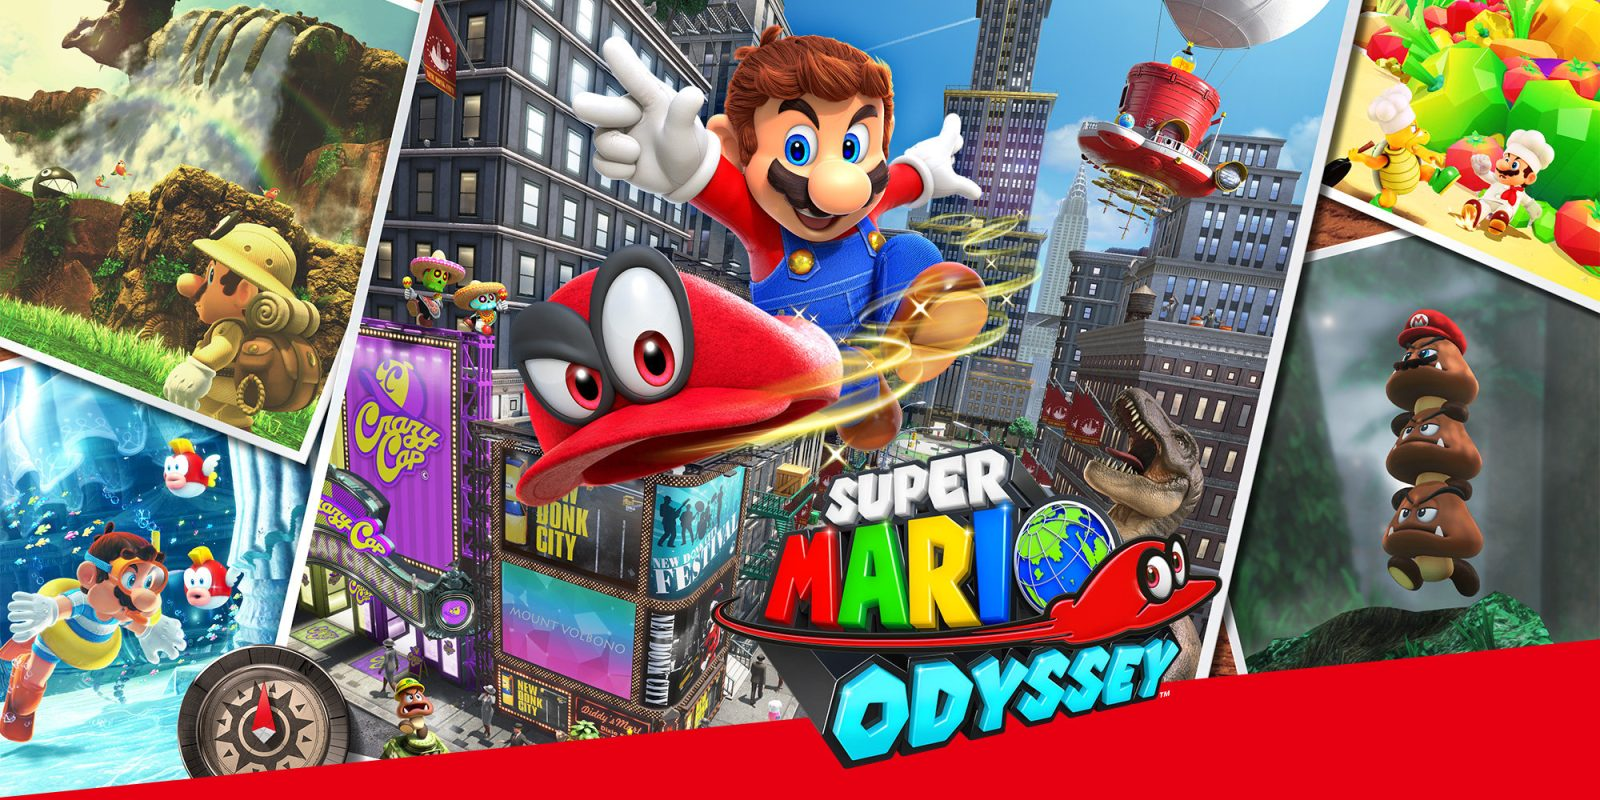 Today's Best Game Deals: Super Mario Odyssey $42, Captain Toad $30, more